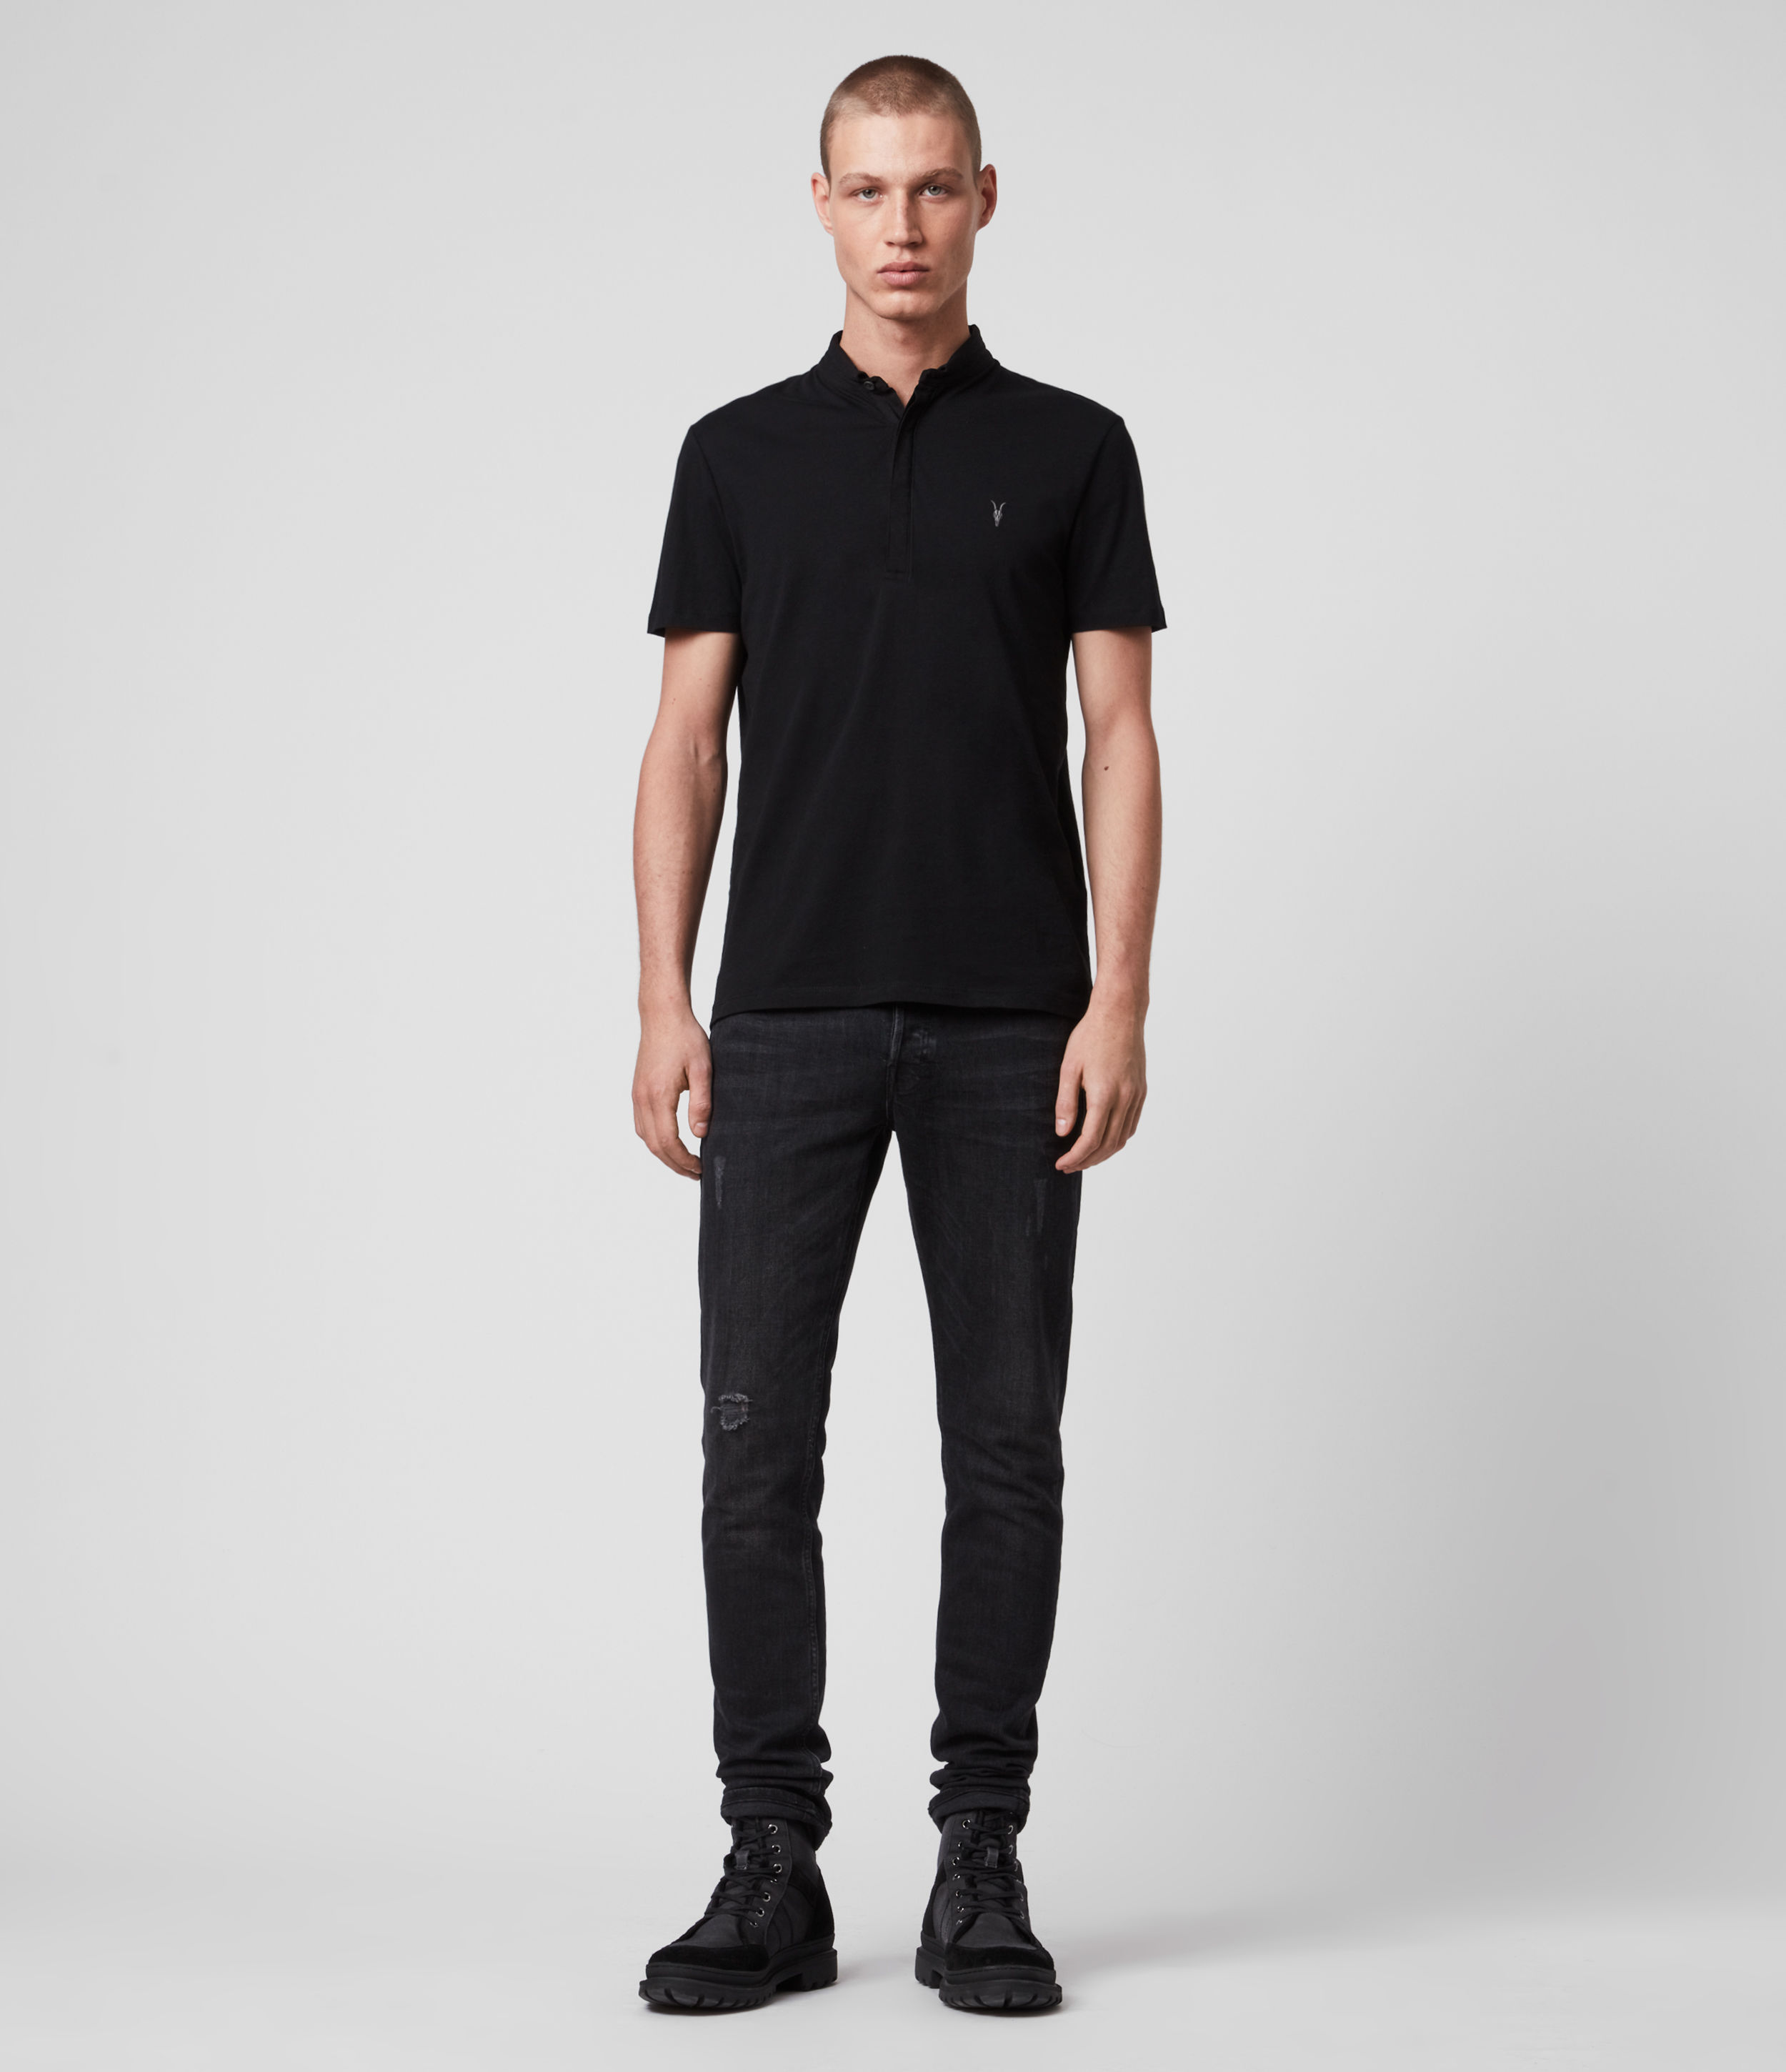 AllSaints Men's Cotton Lightweight Grail Short Sleeve Polo Shirt, Black, Size: L